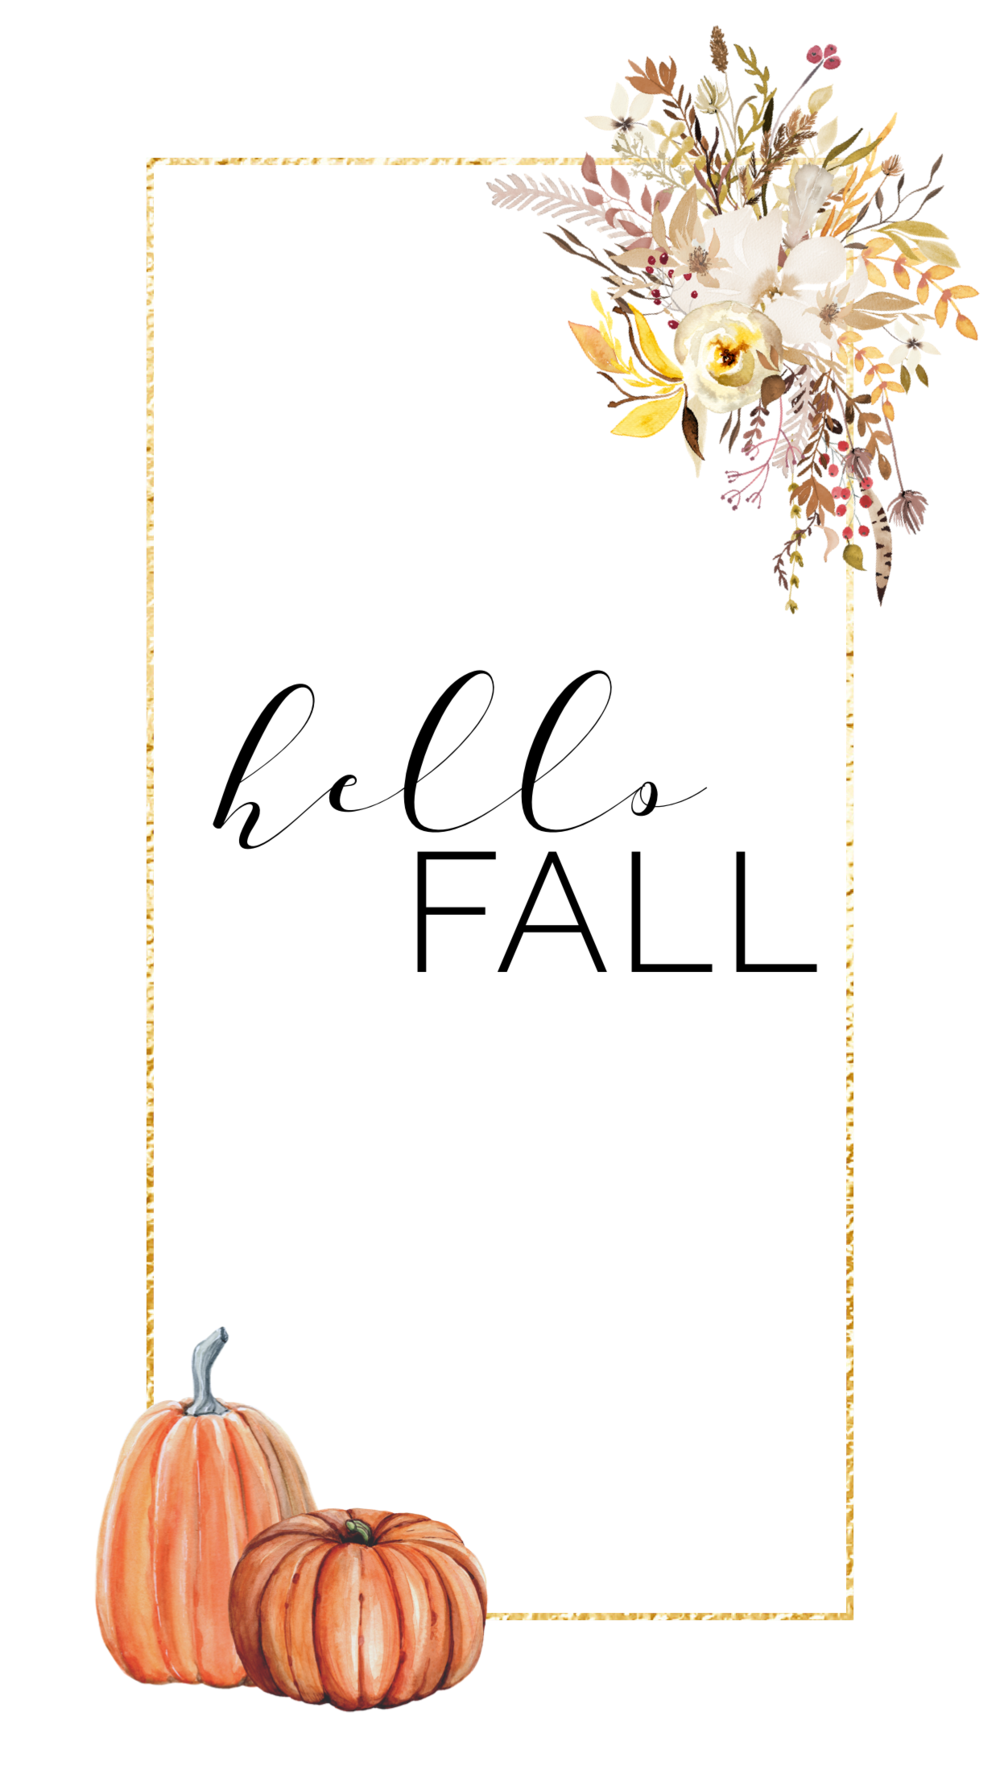 Freebies Honeydo Creative Pumpkin Wallpaper Iphone Wallpaper Fall Fall Wallpaper